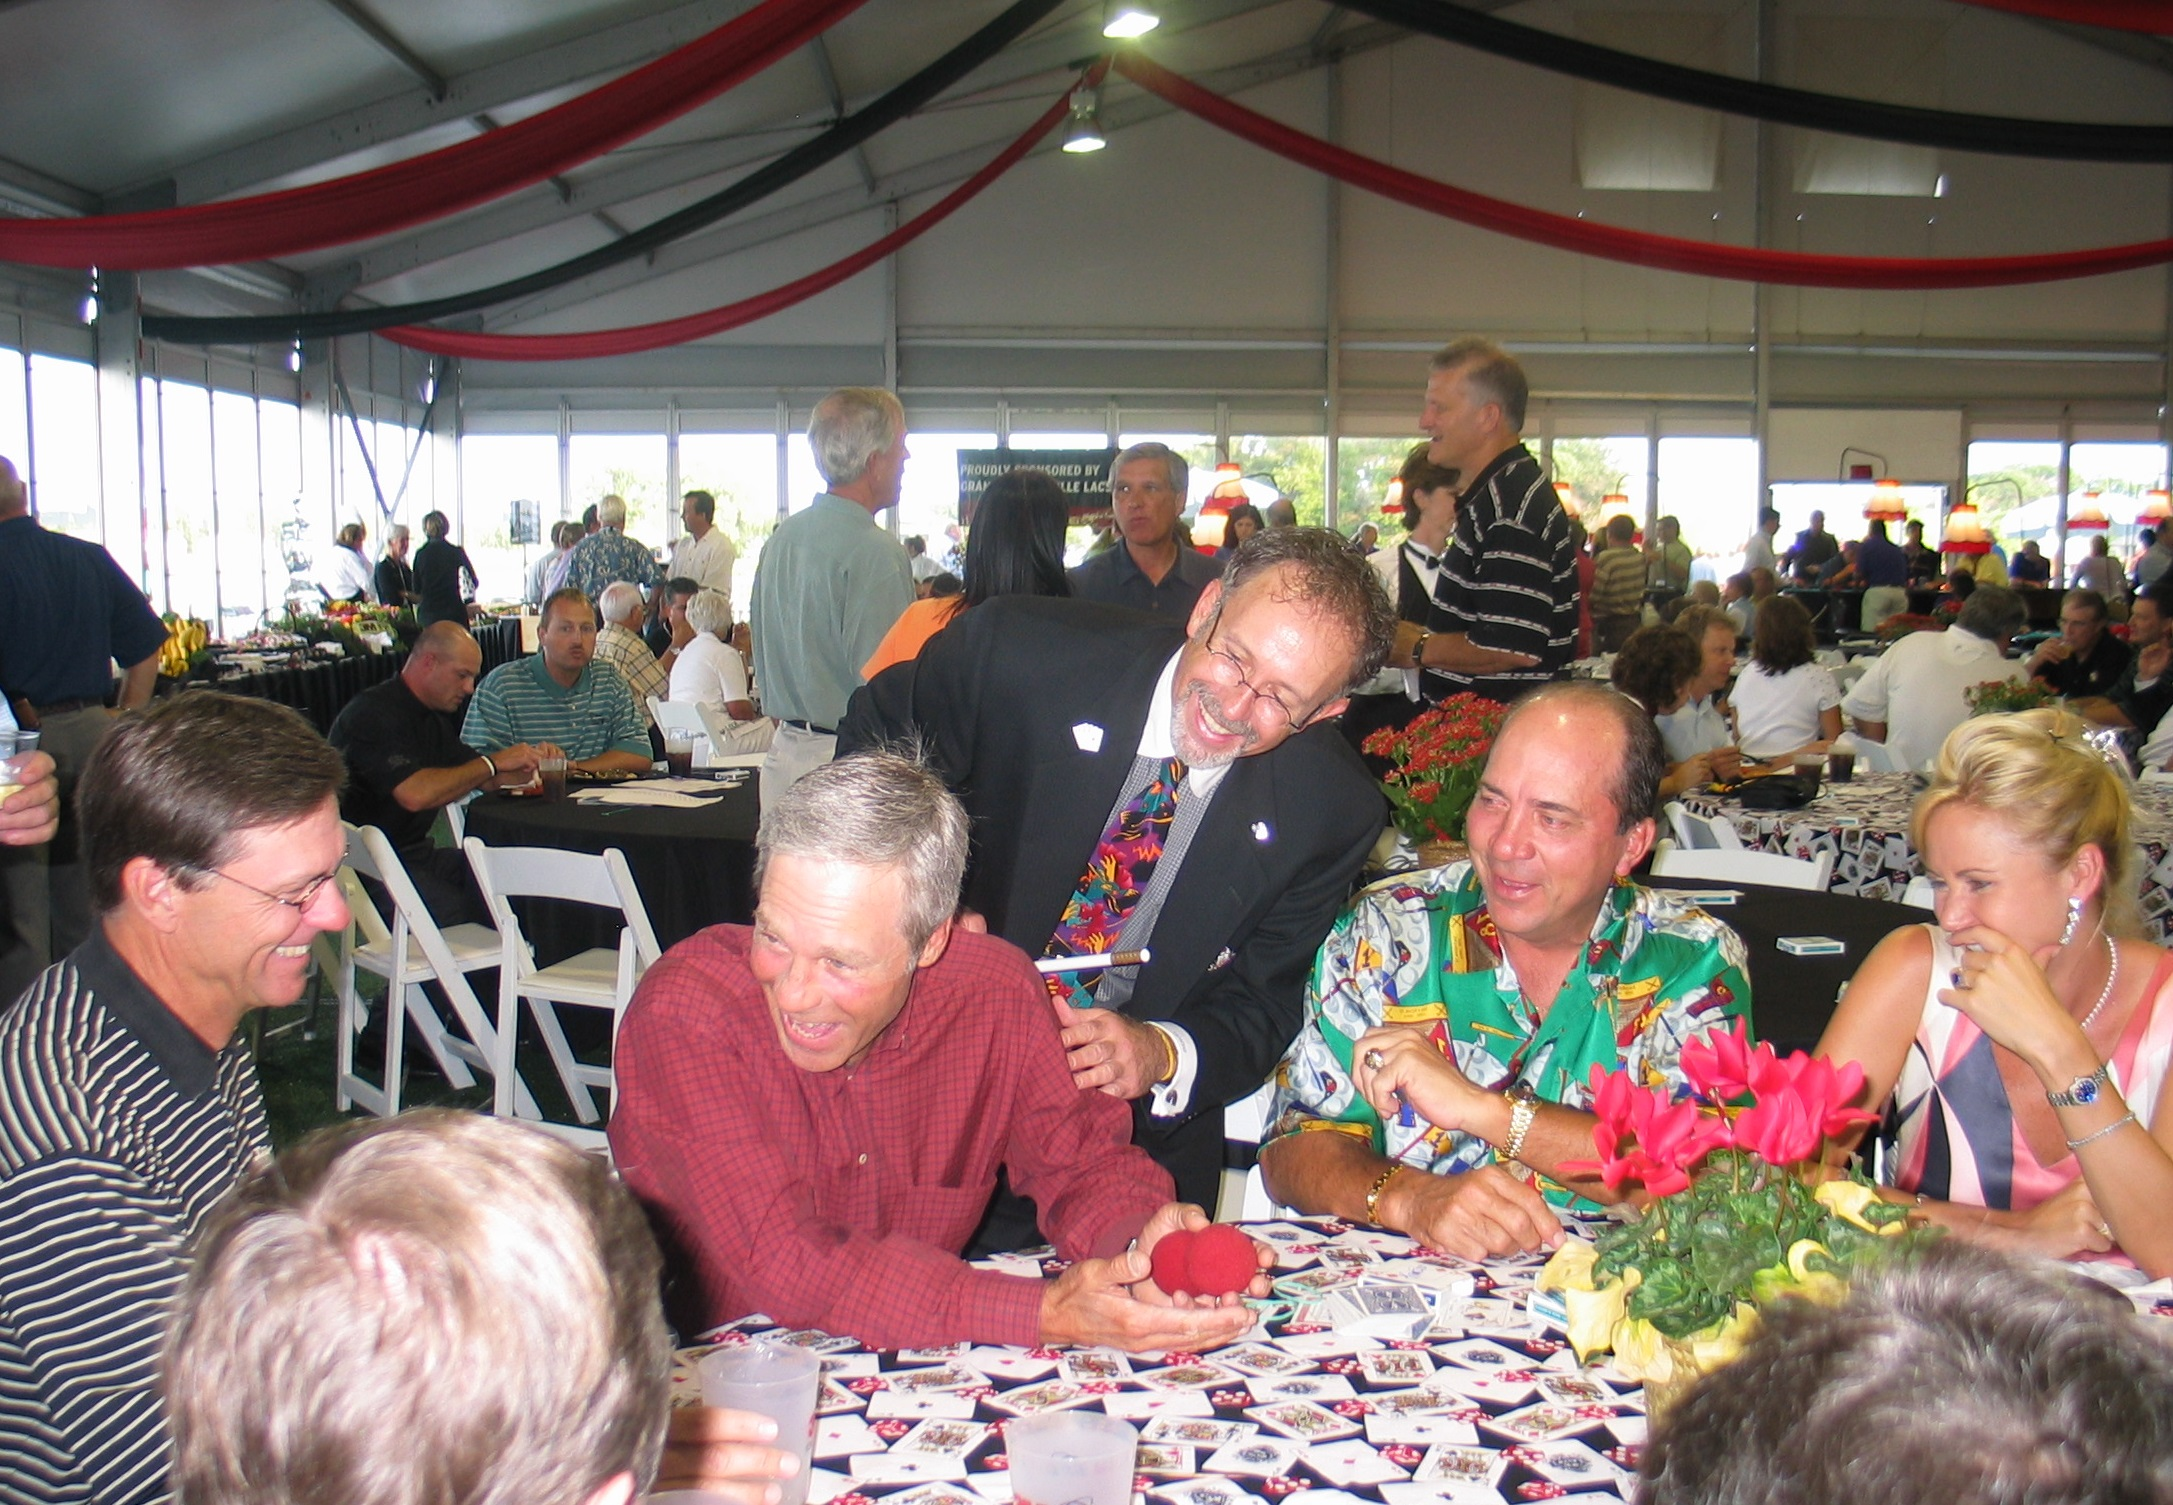 3M Championship Pro-Am Draw Party with Champions Tour golfers from left: Bill Rogers, Ben Crenshaw and baseball legend Johnny Bench. Hondo annually entertains at the Pro-AM Party and VIP Sponsor / Players party held at the home of tournament director Hollis Cavner.